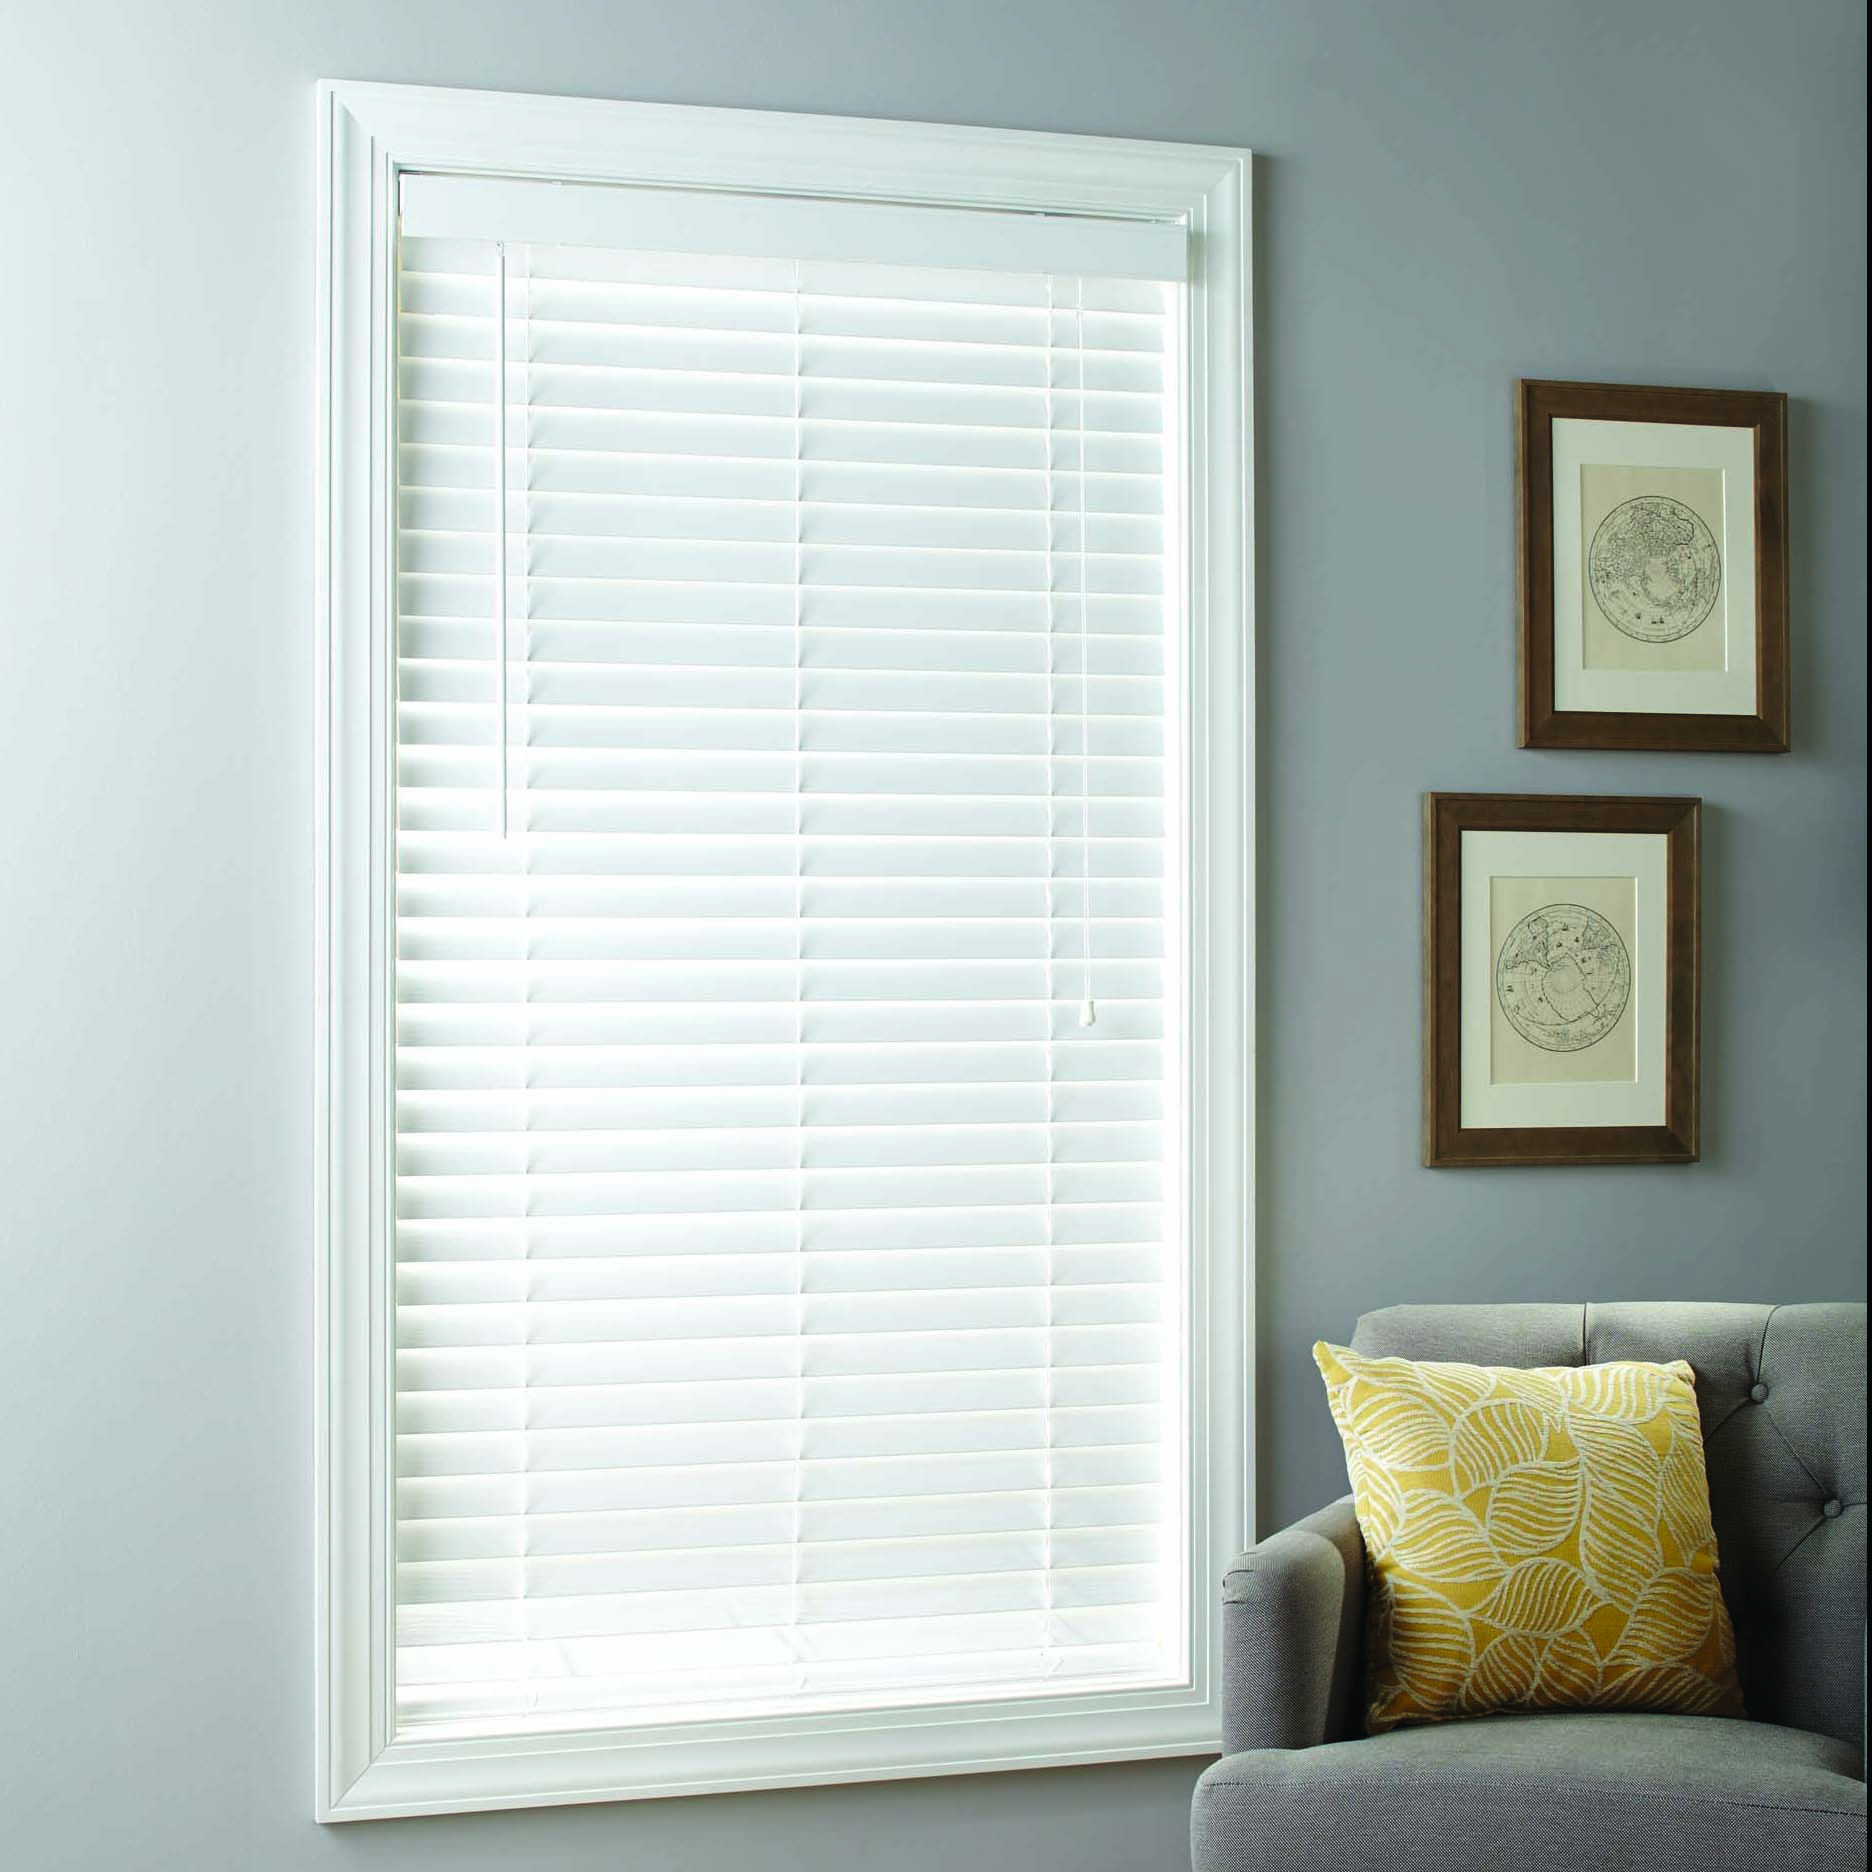 Better Homes Gardens 2 Inch Cordless Faux Wood Blinds White Multiple Sizes Walmart Com In 2020 Cordless Blinds Faux Wood Blinds Wood Blinds